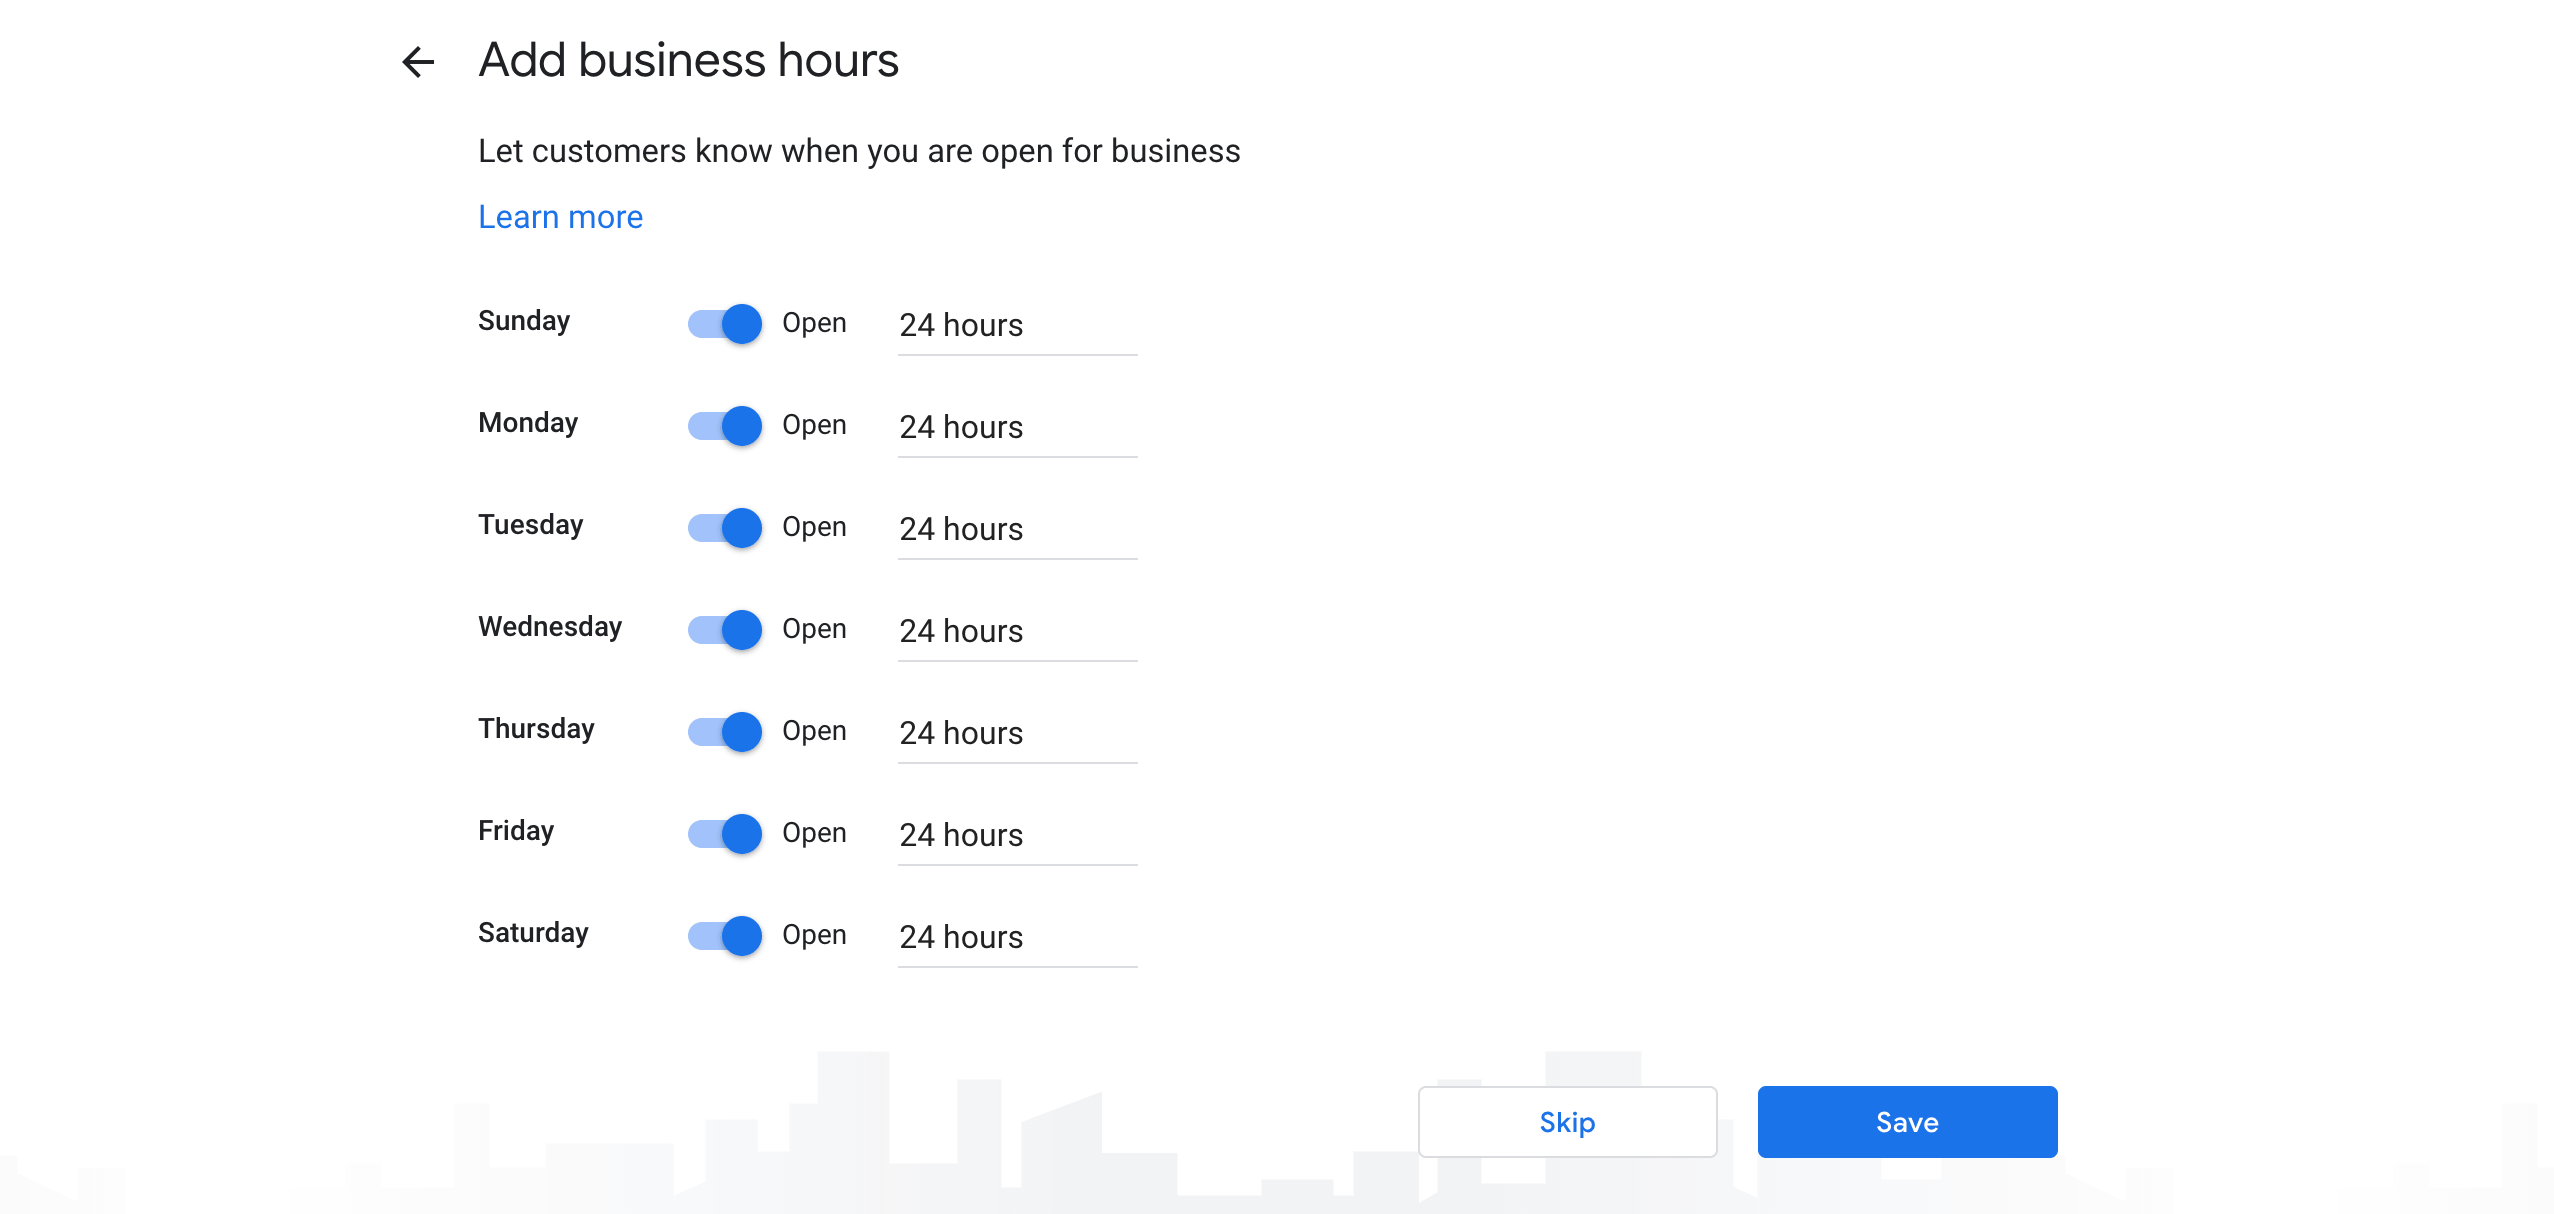 Adding business hours to a Google My Business Profile.